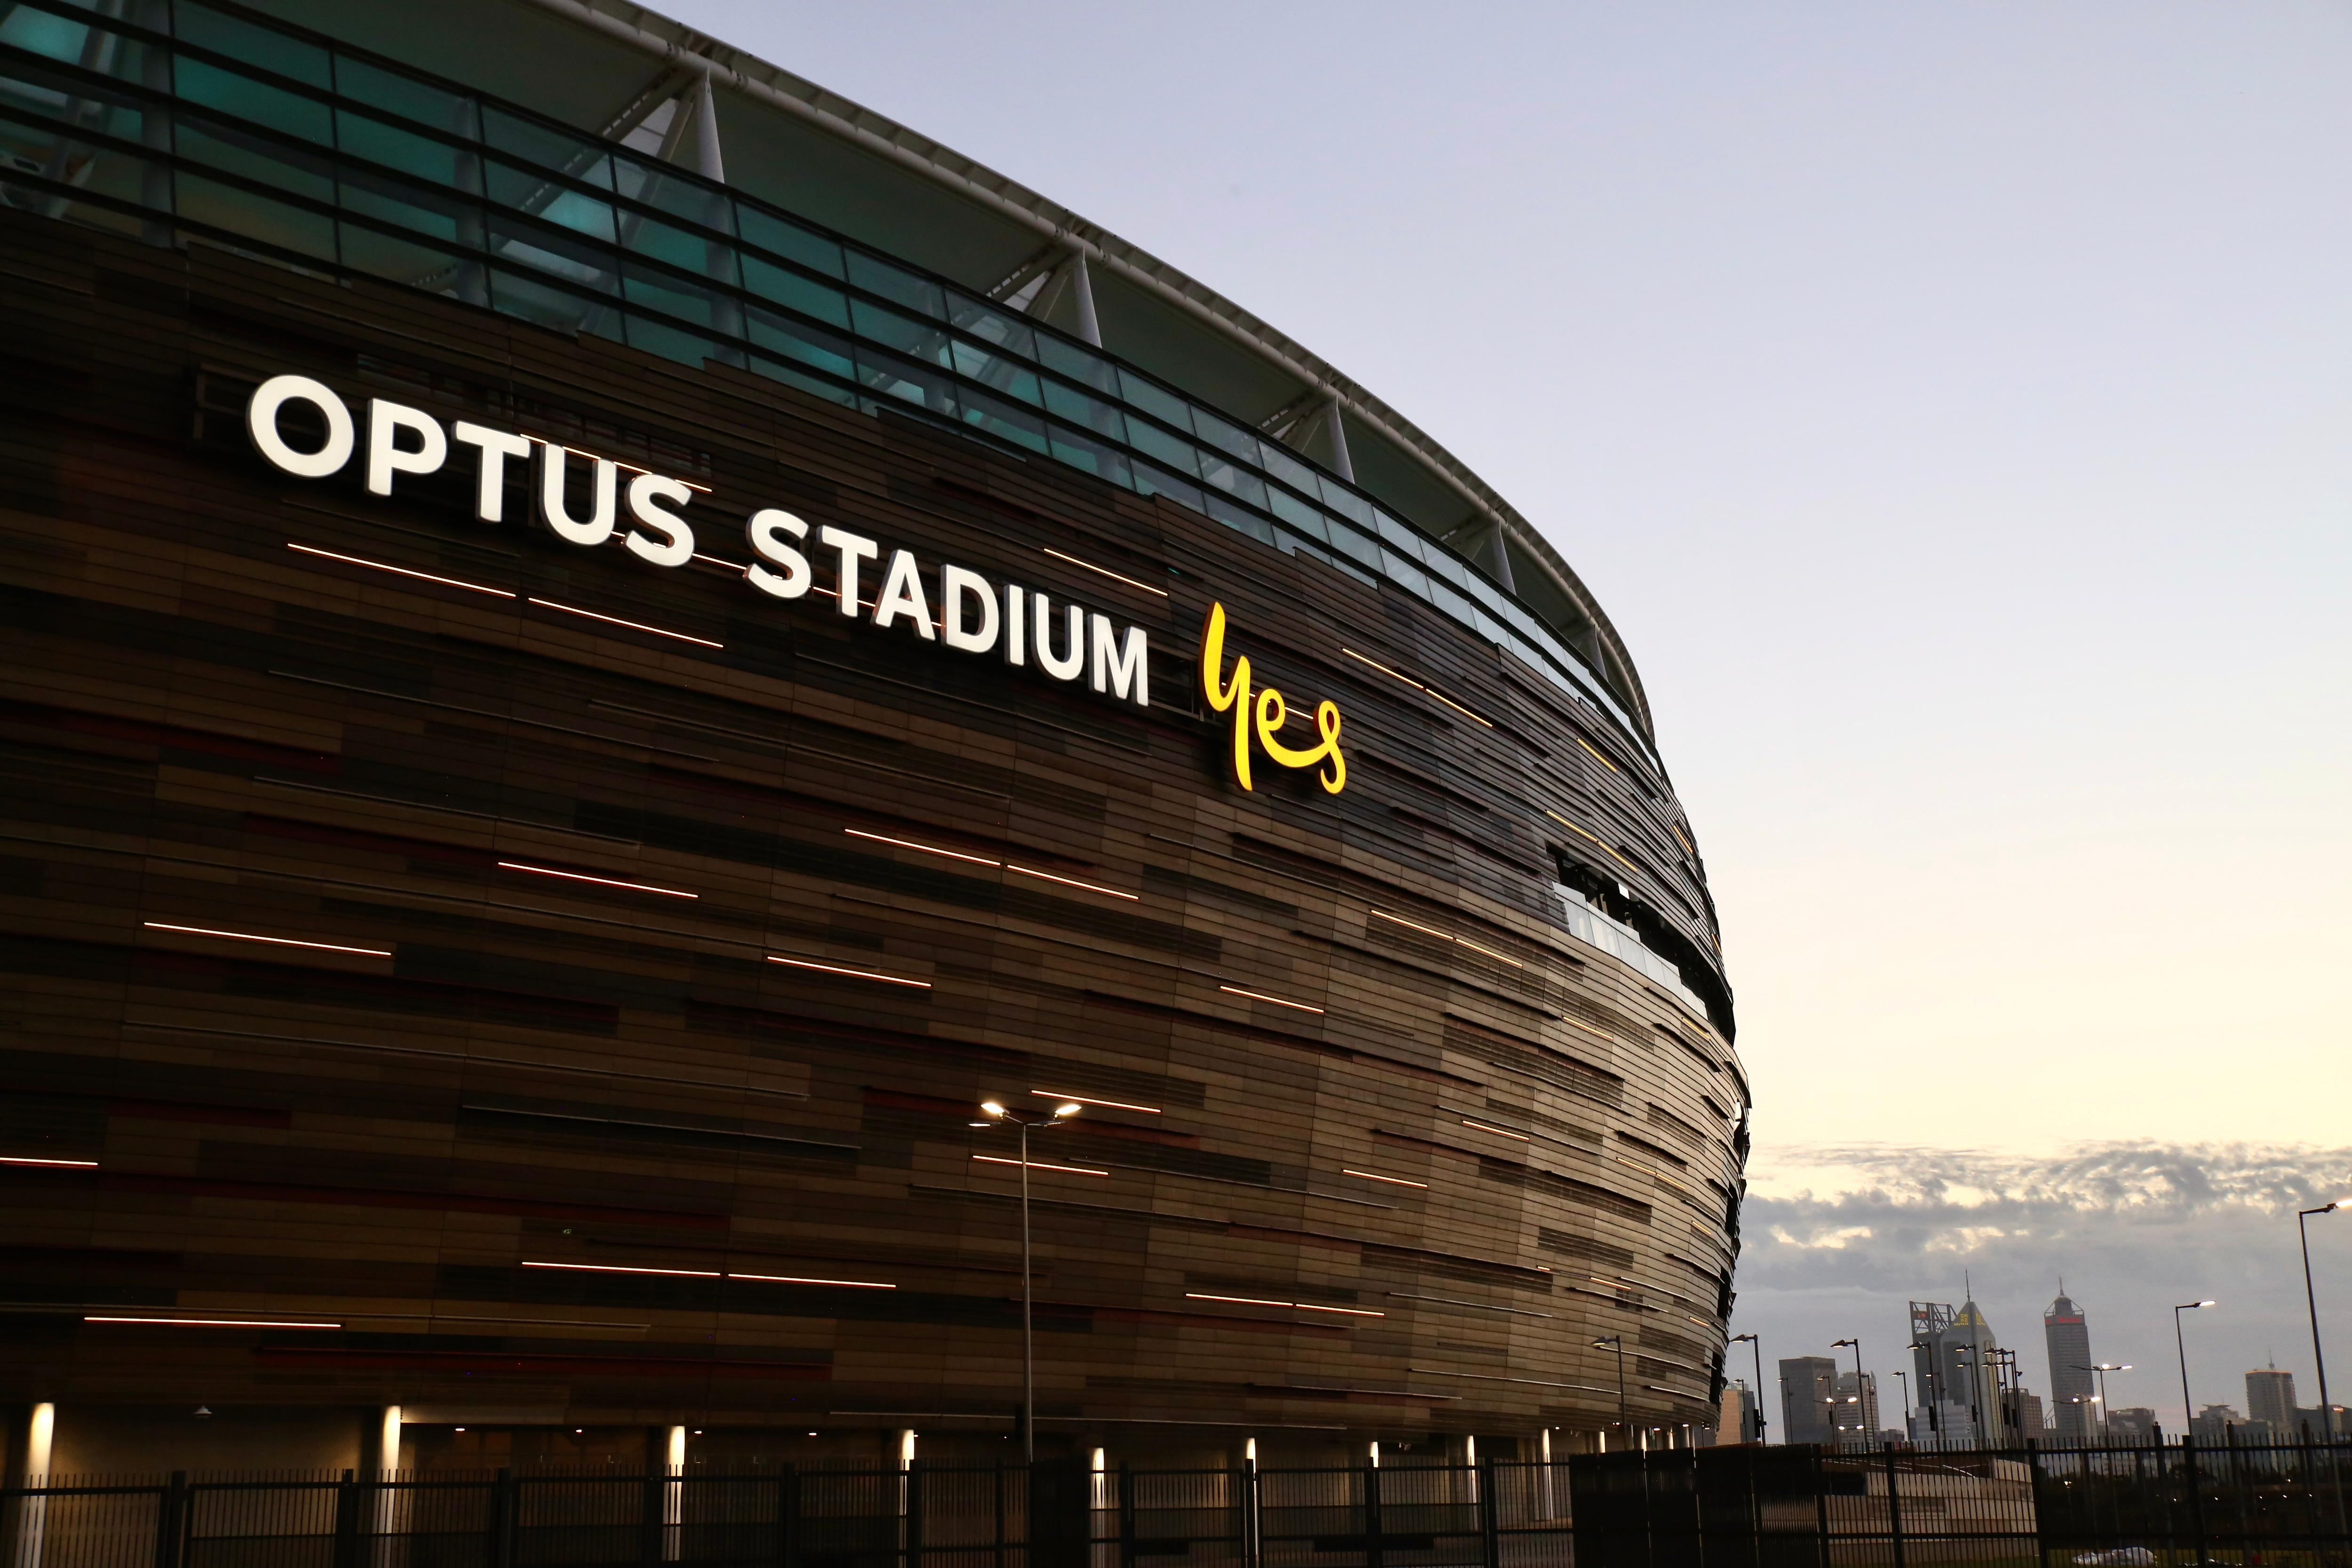 The hulking Perth stadium fills the frame with the Perth city skyline small in the bottom corner at dusk